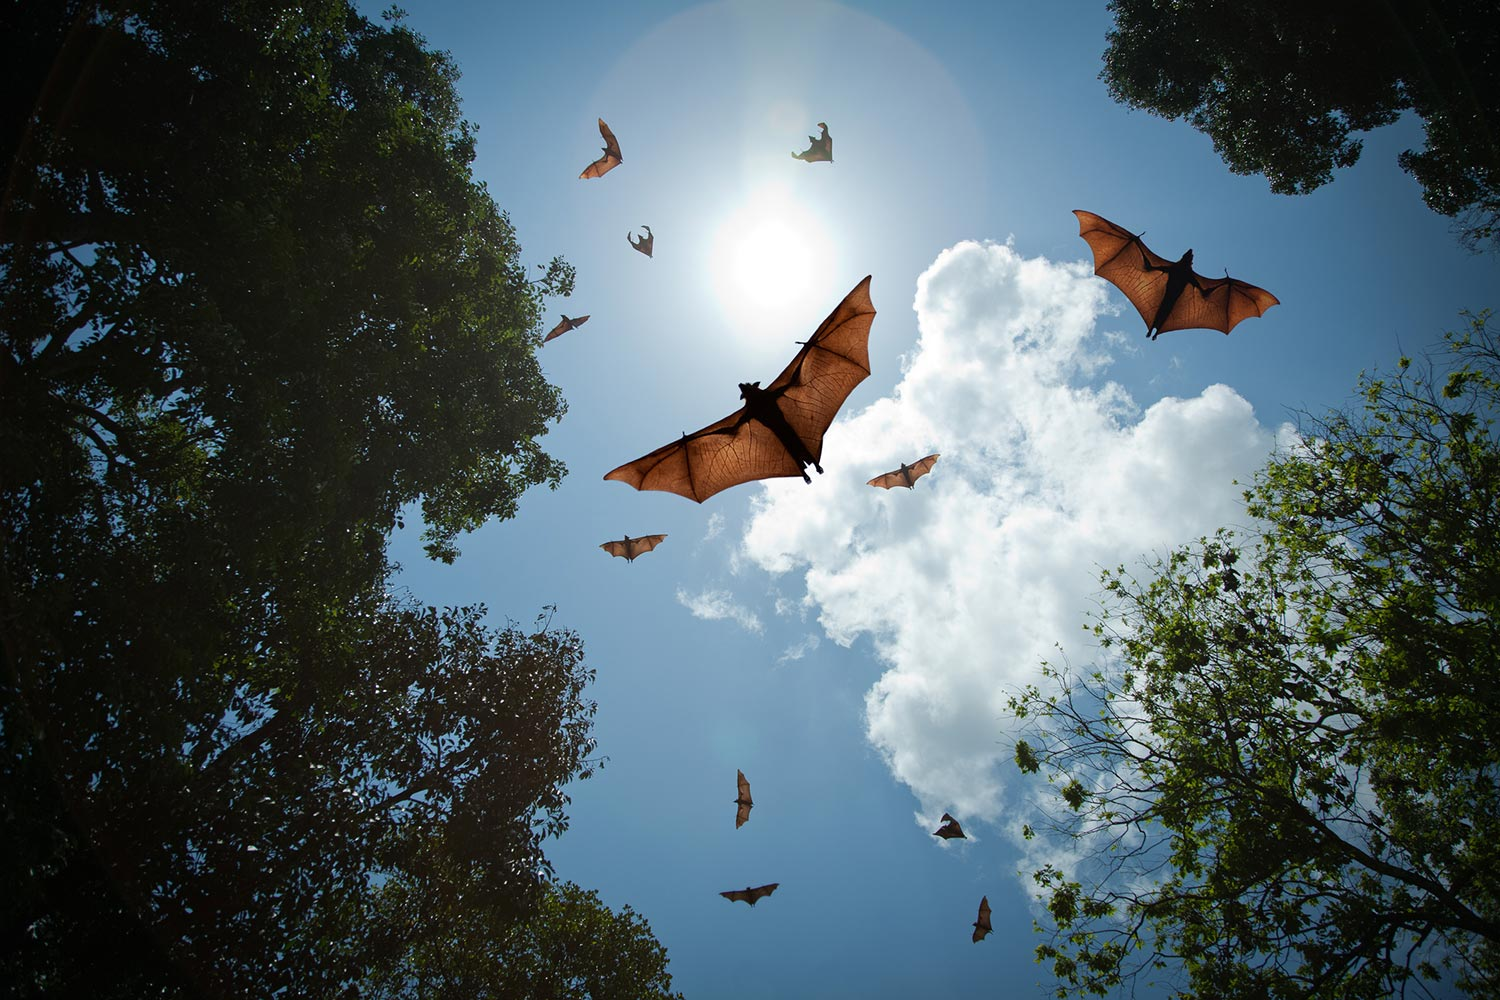 Bats flying around in the sunlight